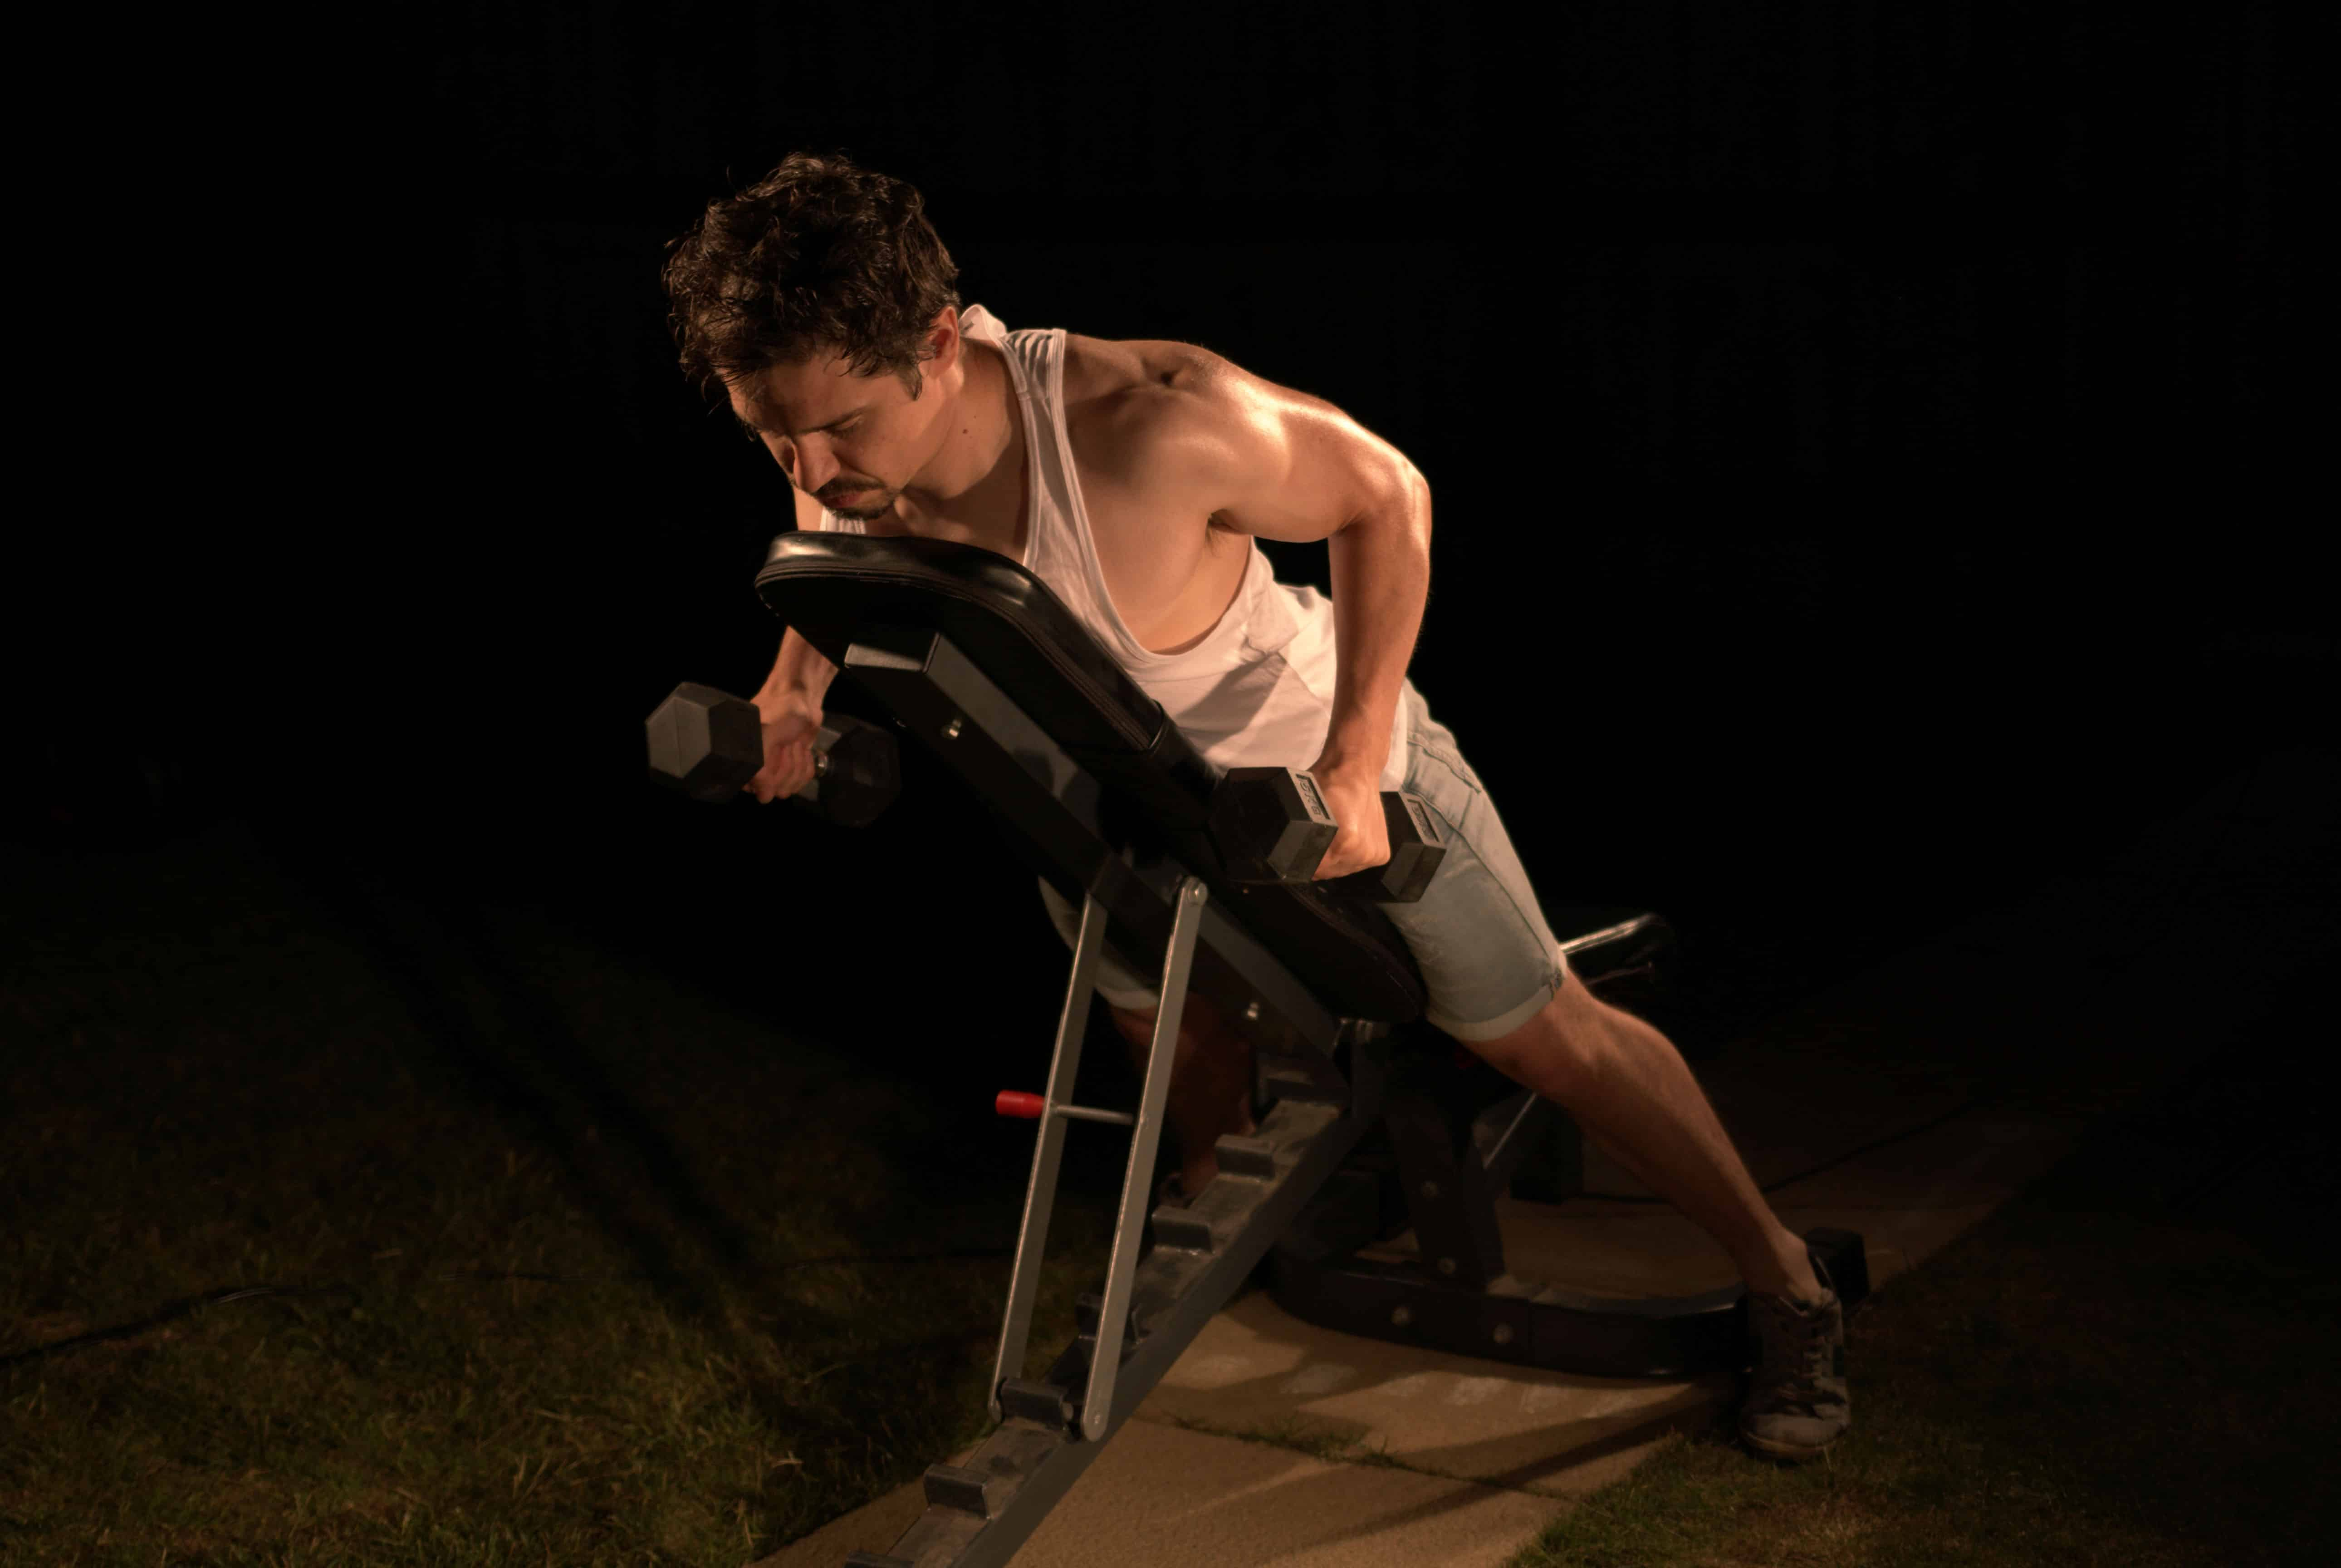 How to do an incline dumbbell row